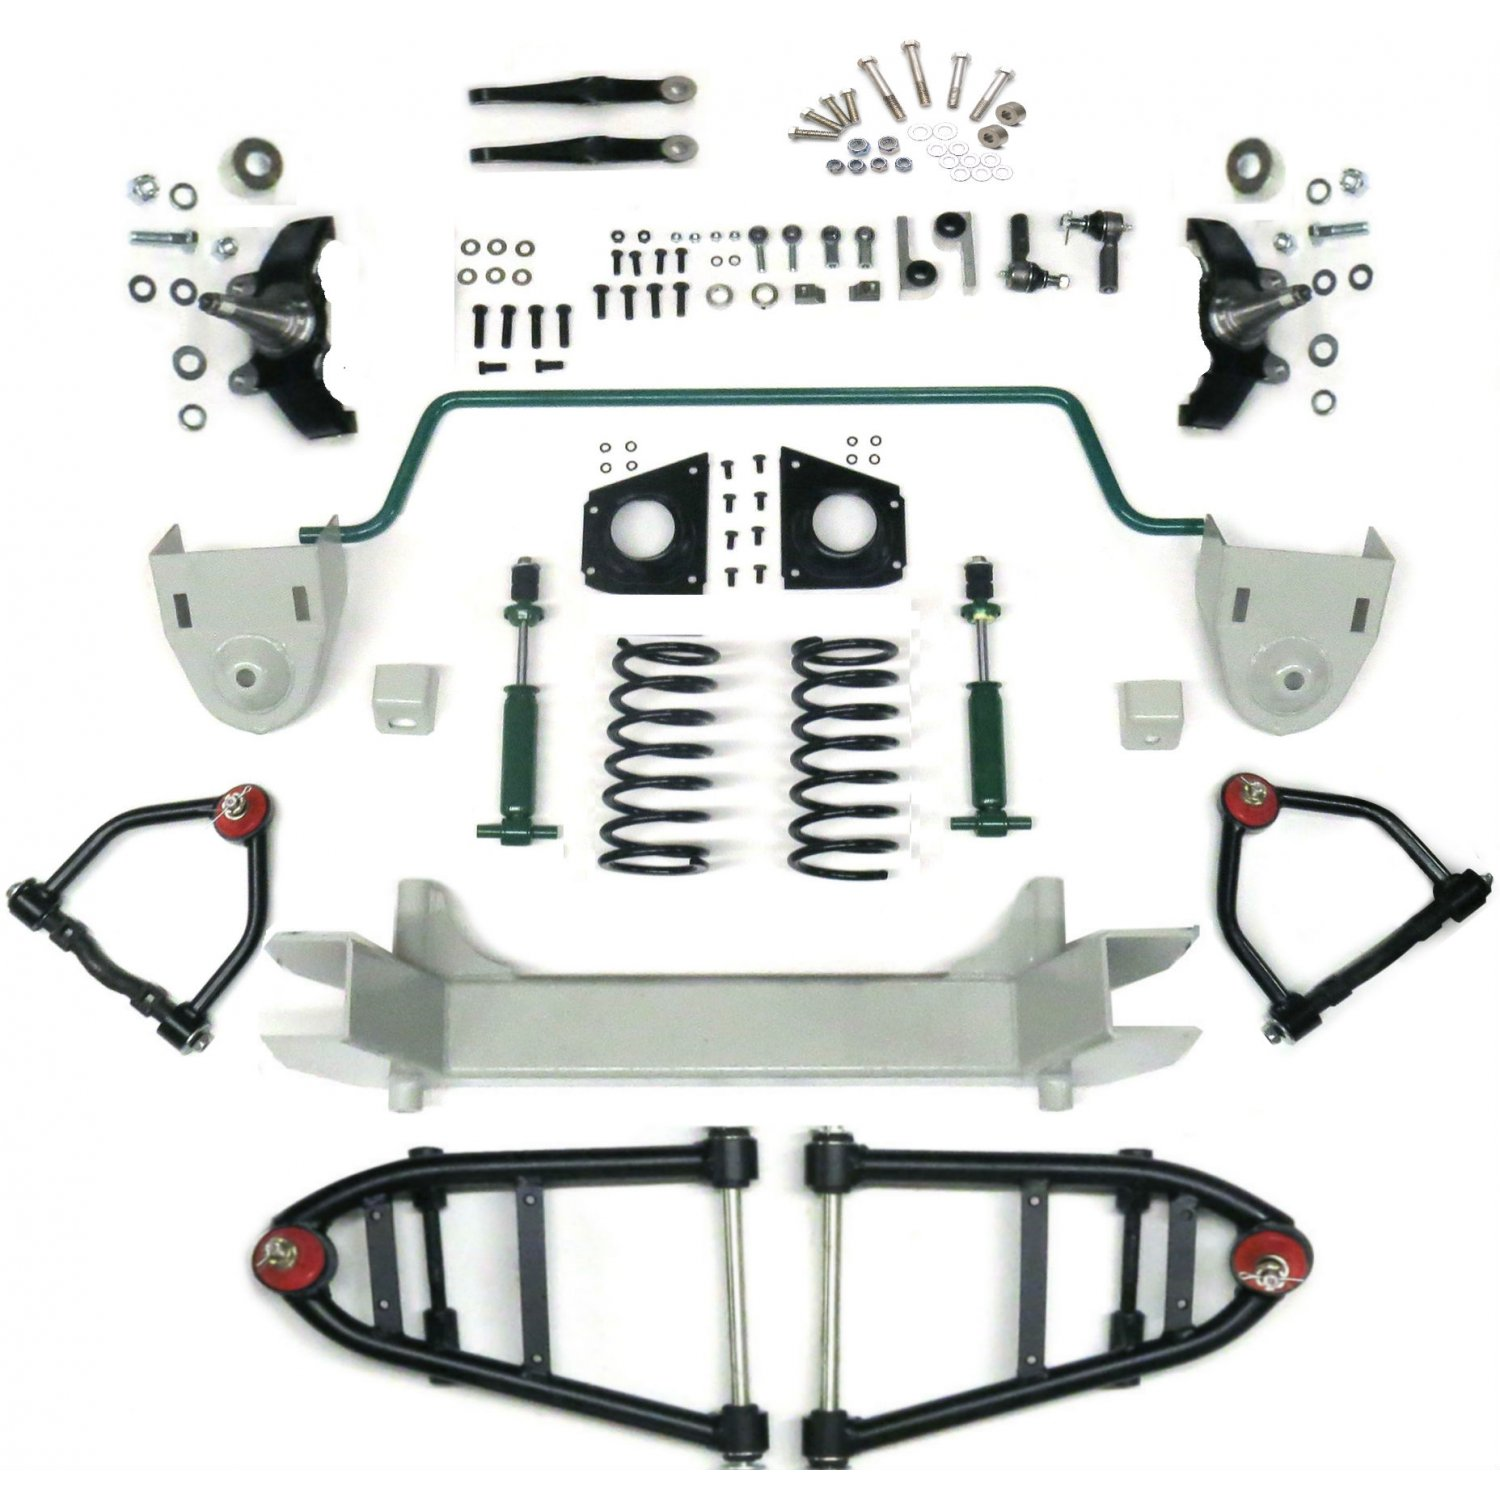 mustang ii 2 ifs front end kit for 54 66 buick stage 2 1985 mustang wiring diagram 1985 mustang wiring diagram 1985 mustang wiring diagram 1985 mustang wiring diagram